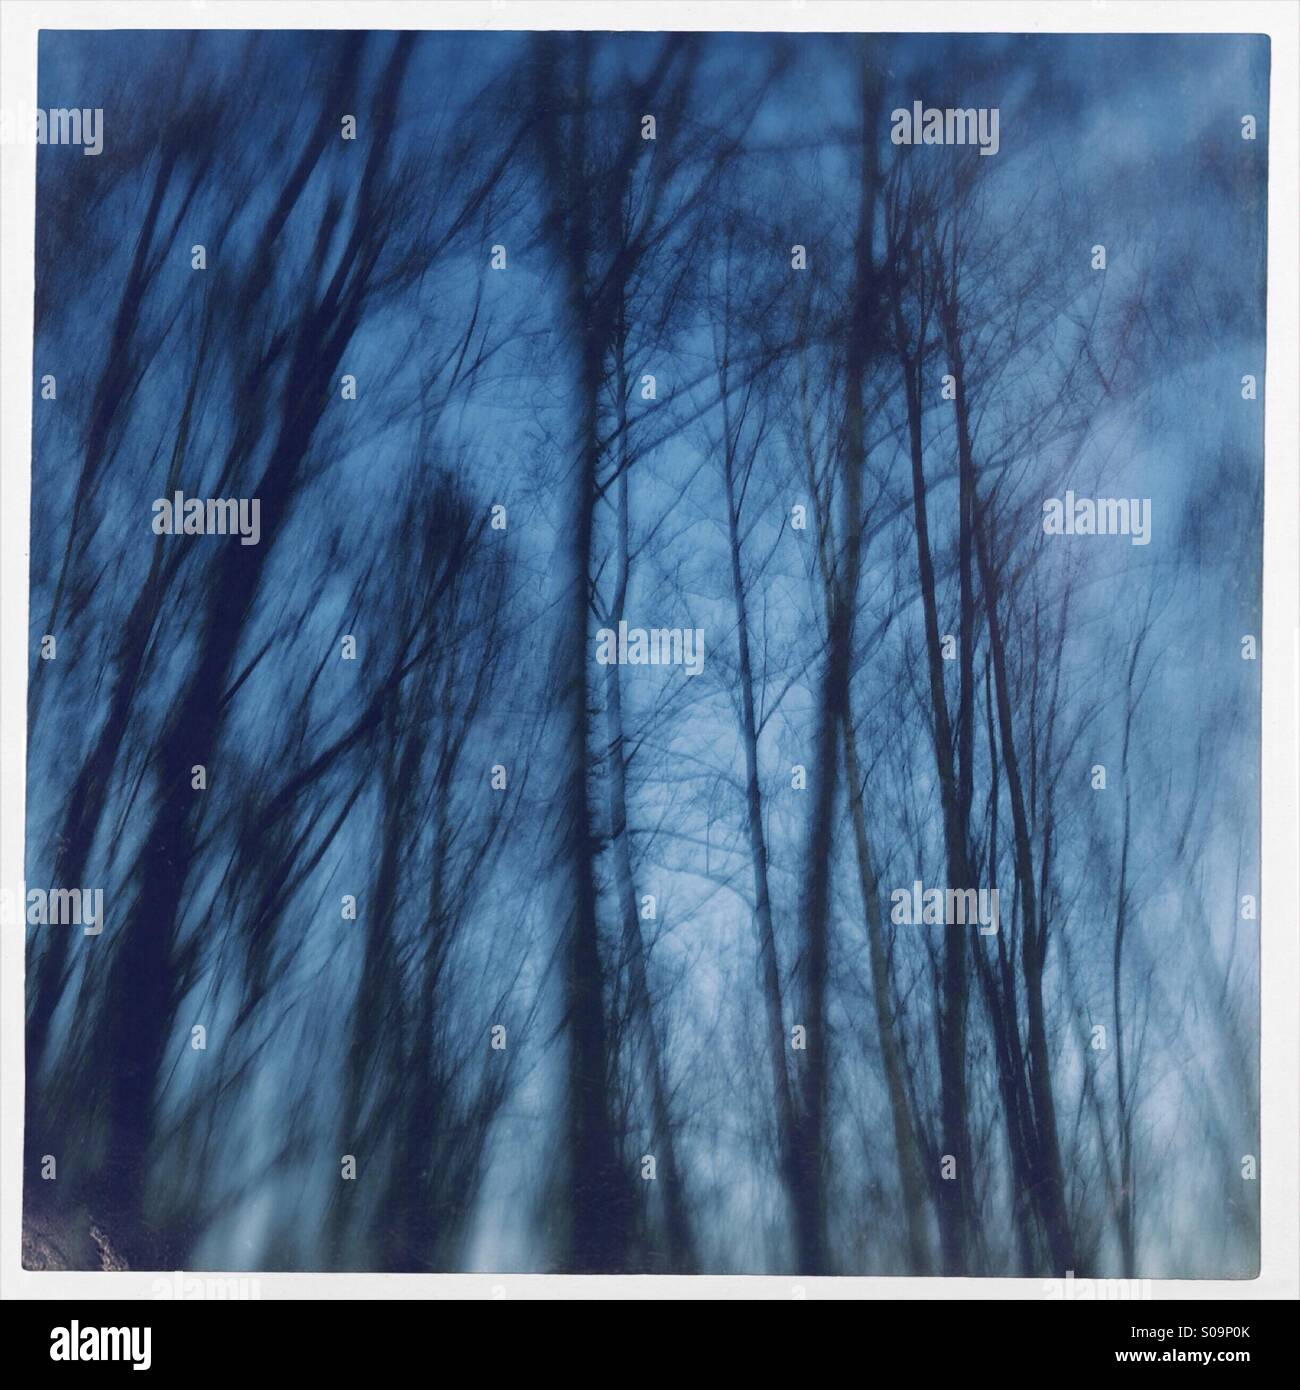 Abstract photo of trees taken at Flogbergets gruvor or in Dalarna, Sweden. - Stock Image